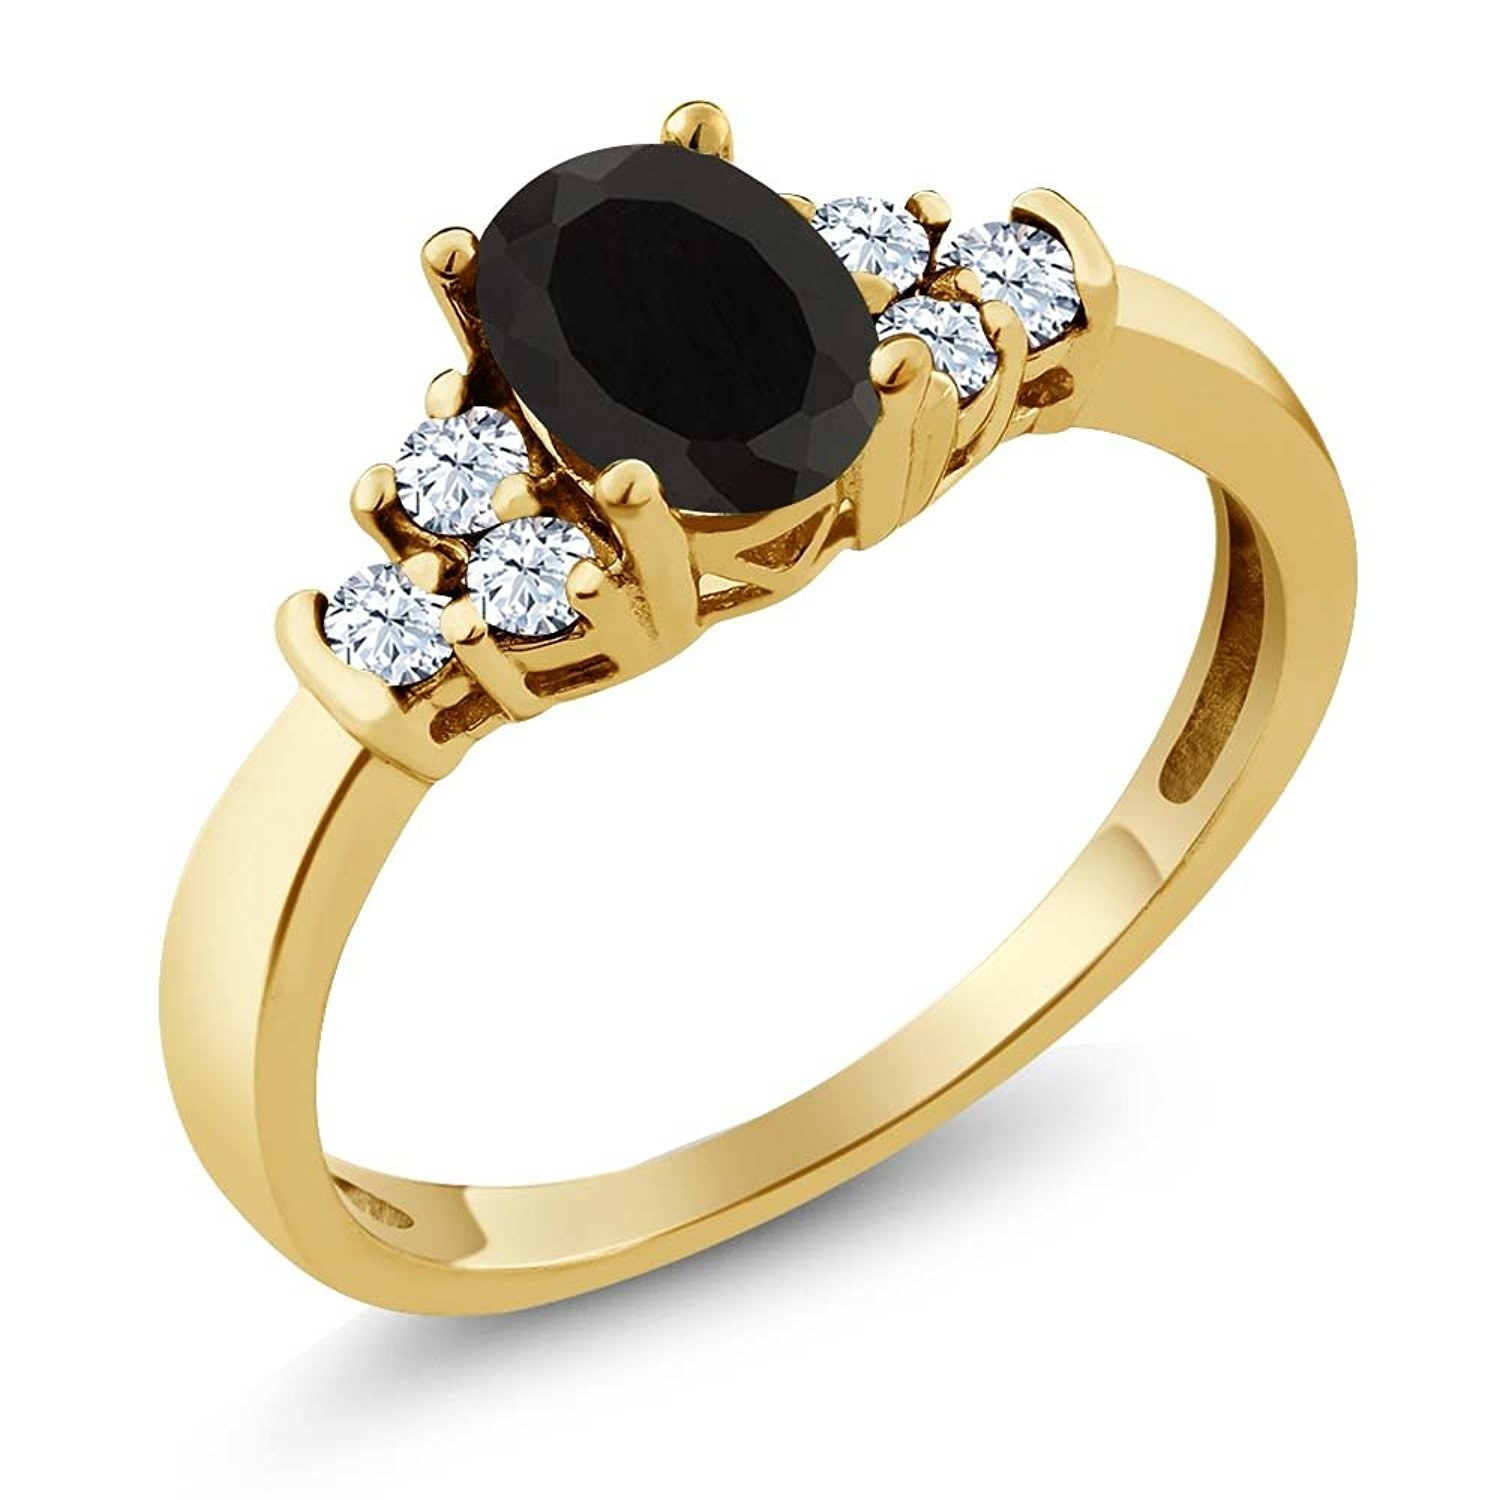 Buzzfeed 7 Rings: 25 Of The Best Places To Buy An Engagement Ring Online